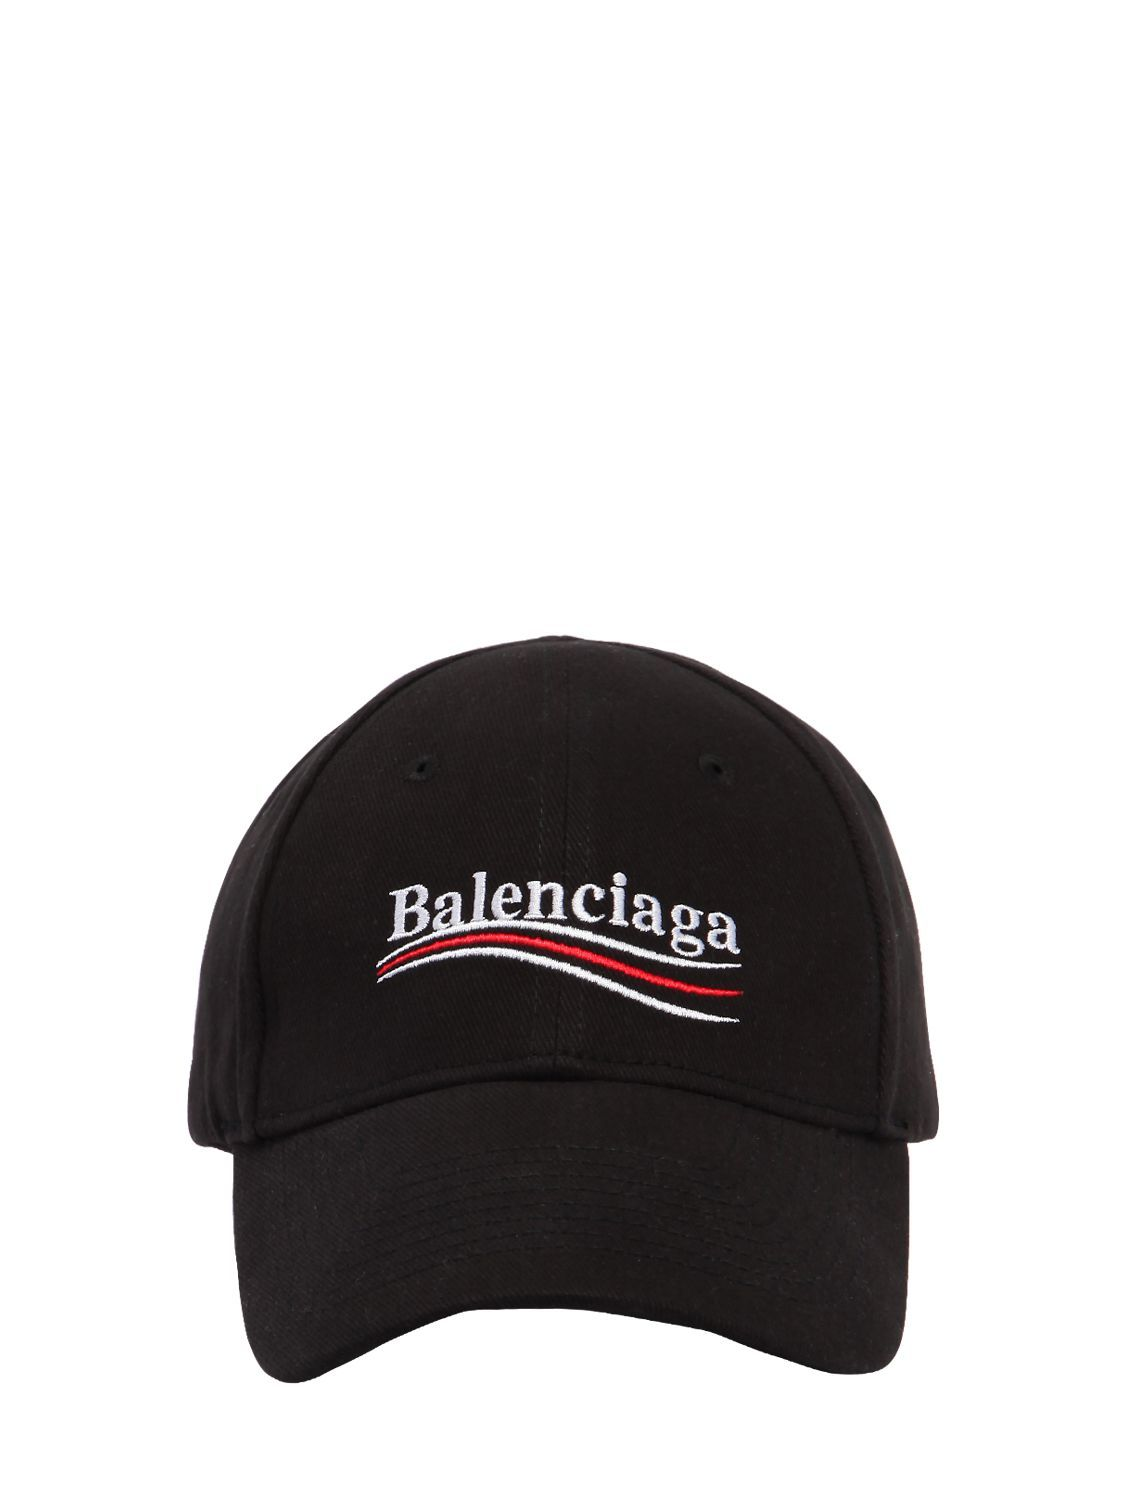 New Political logo baseball cap - Blue Balenciaga